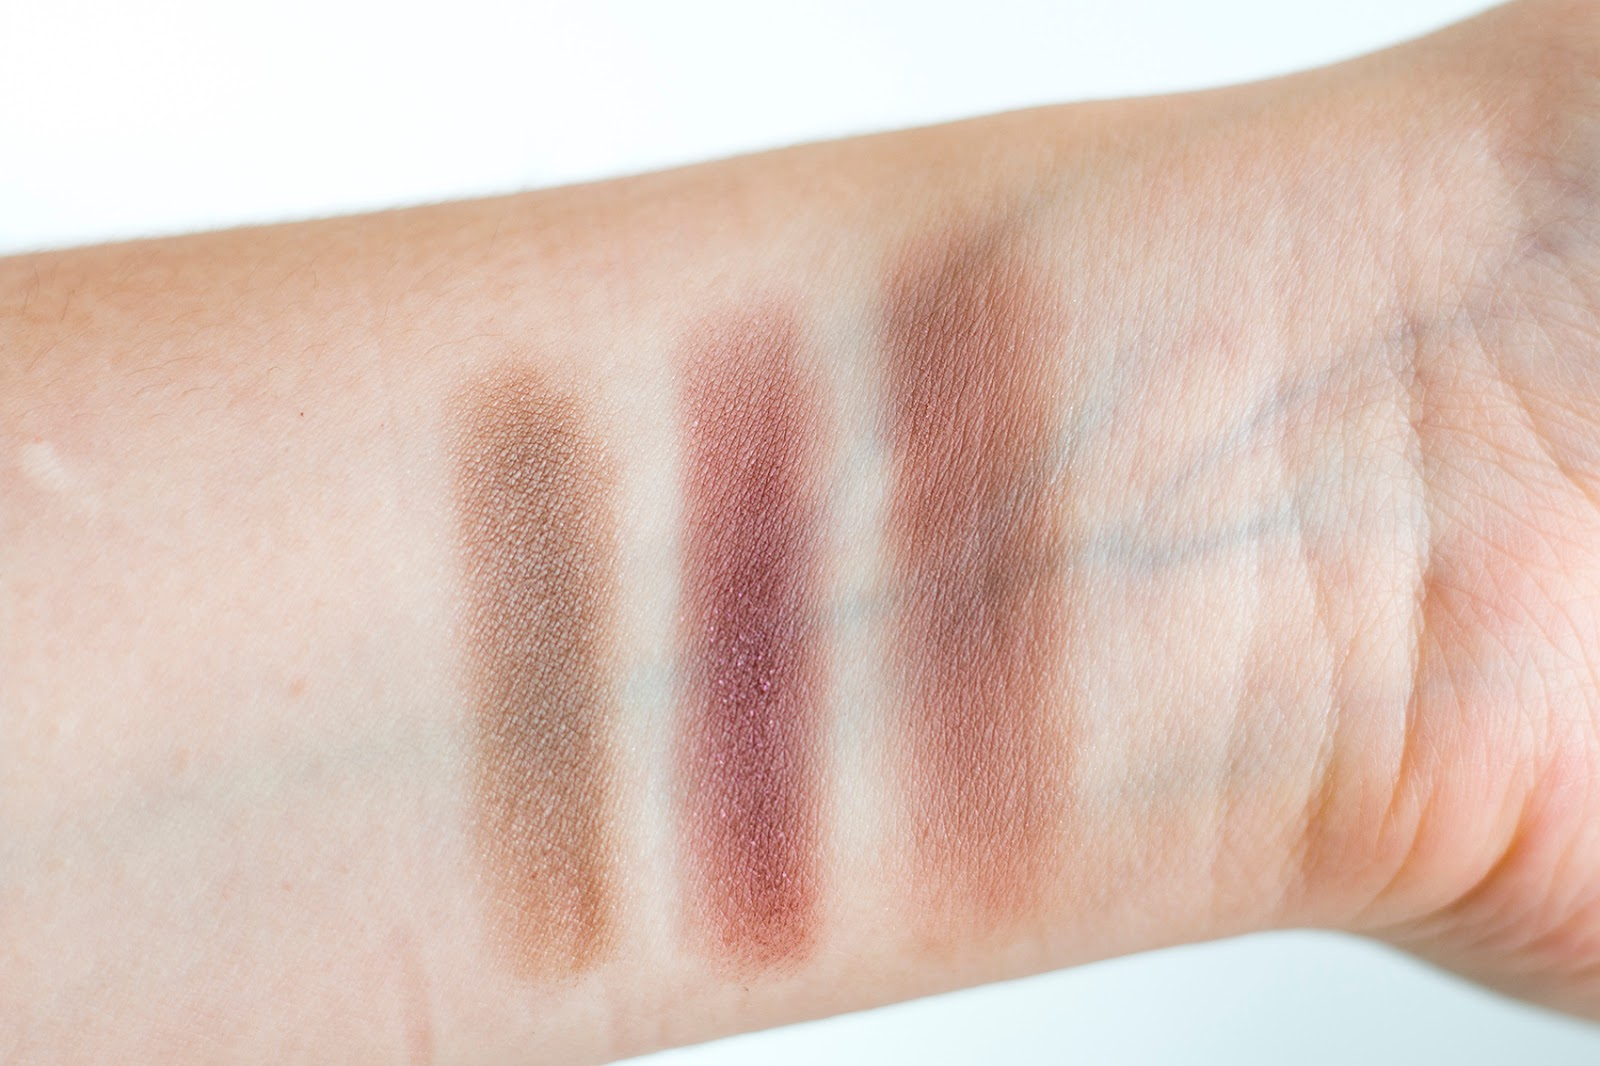 Jane Iredale PurePressed Eye Shadow Triple in Soft Kiss swatches